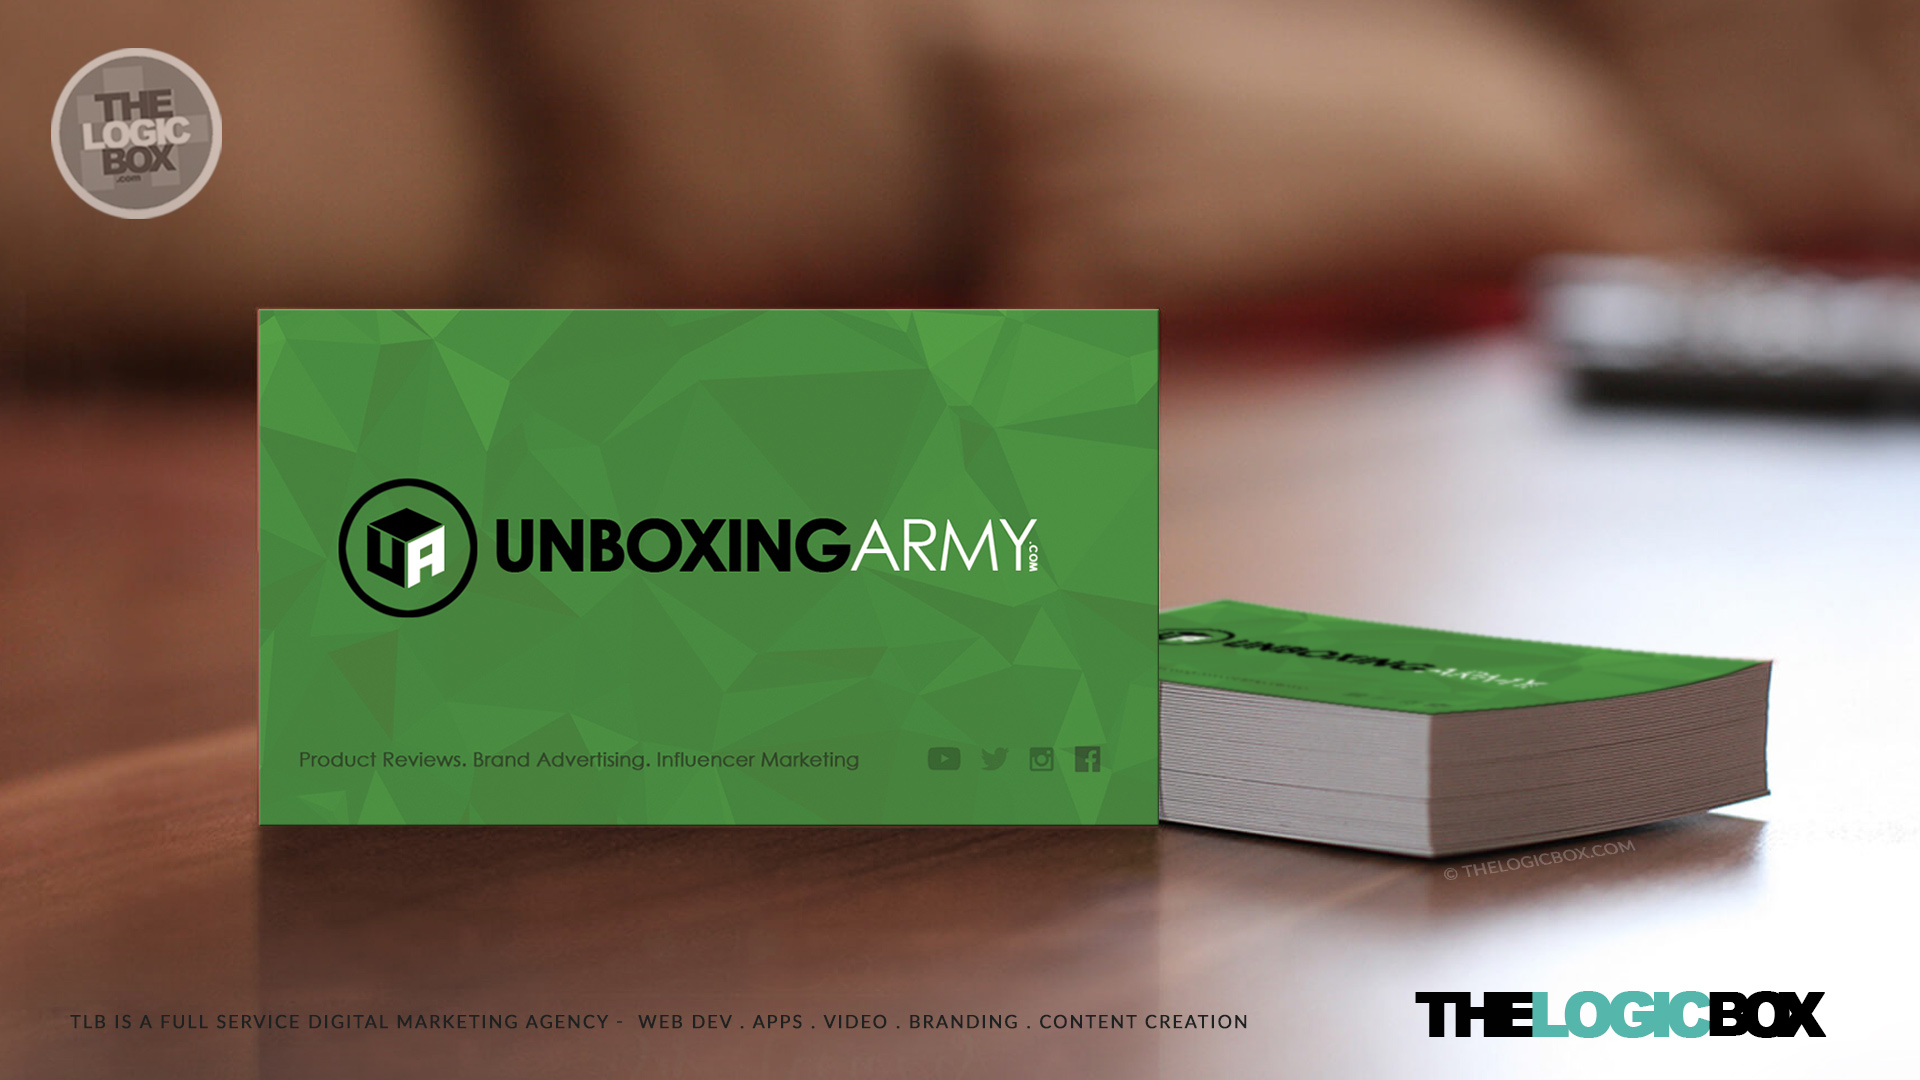 Business-Card-the-logic-box-agency-1-unboxingarmy_1